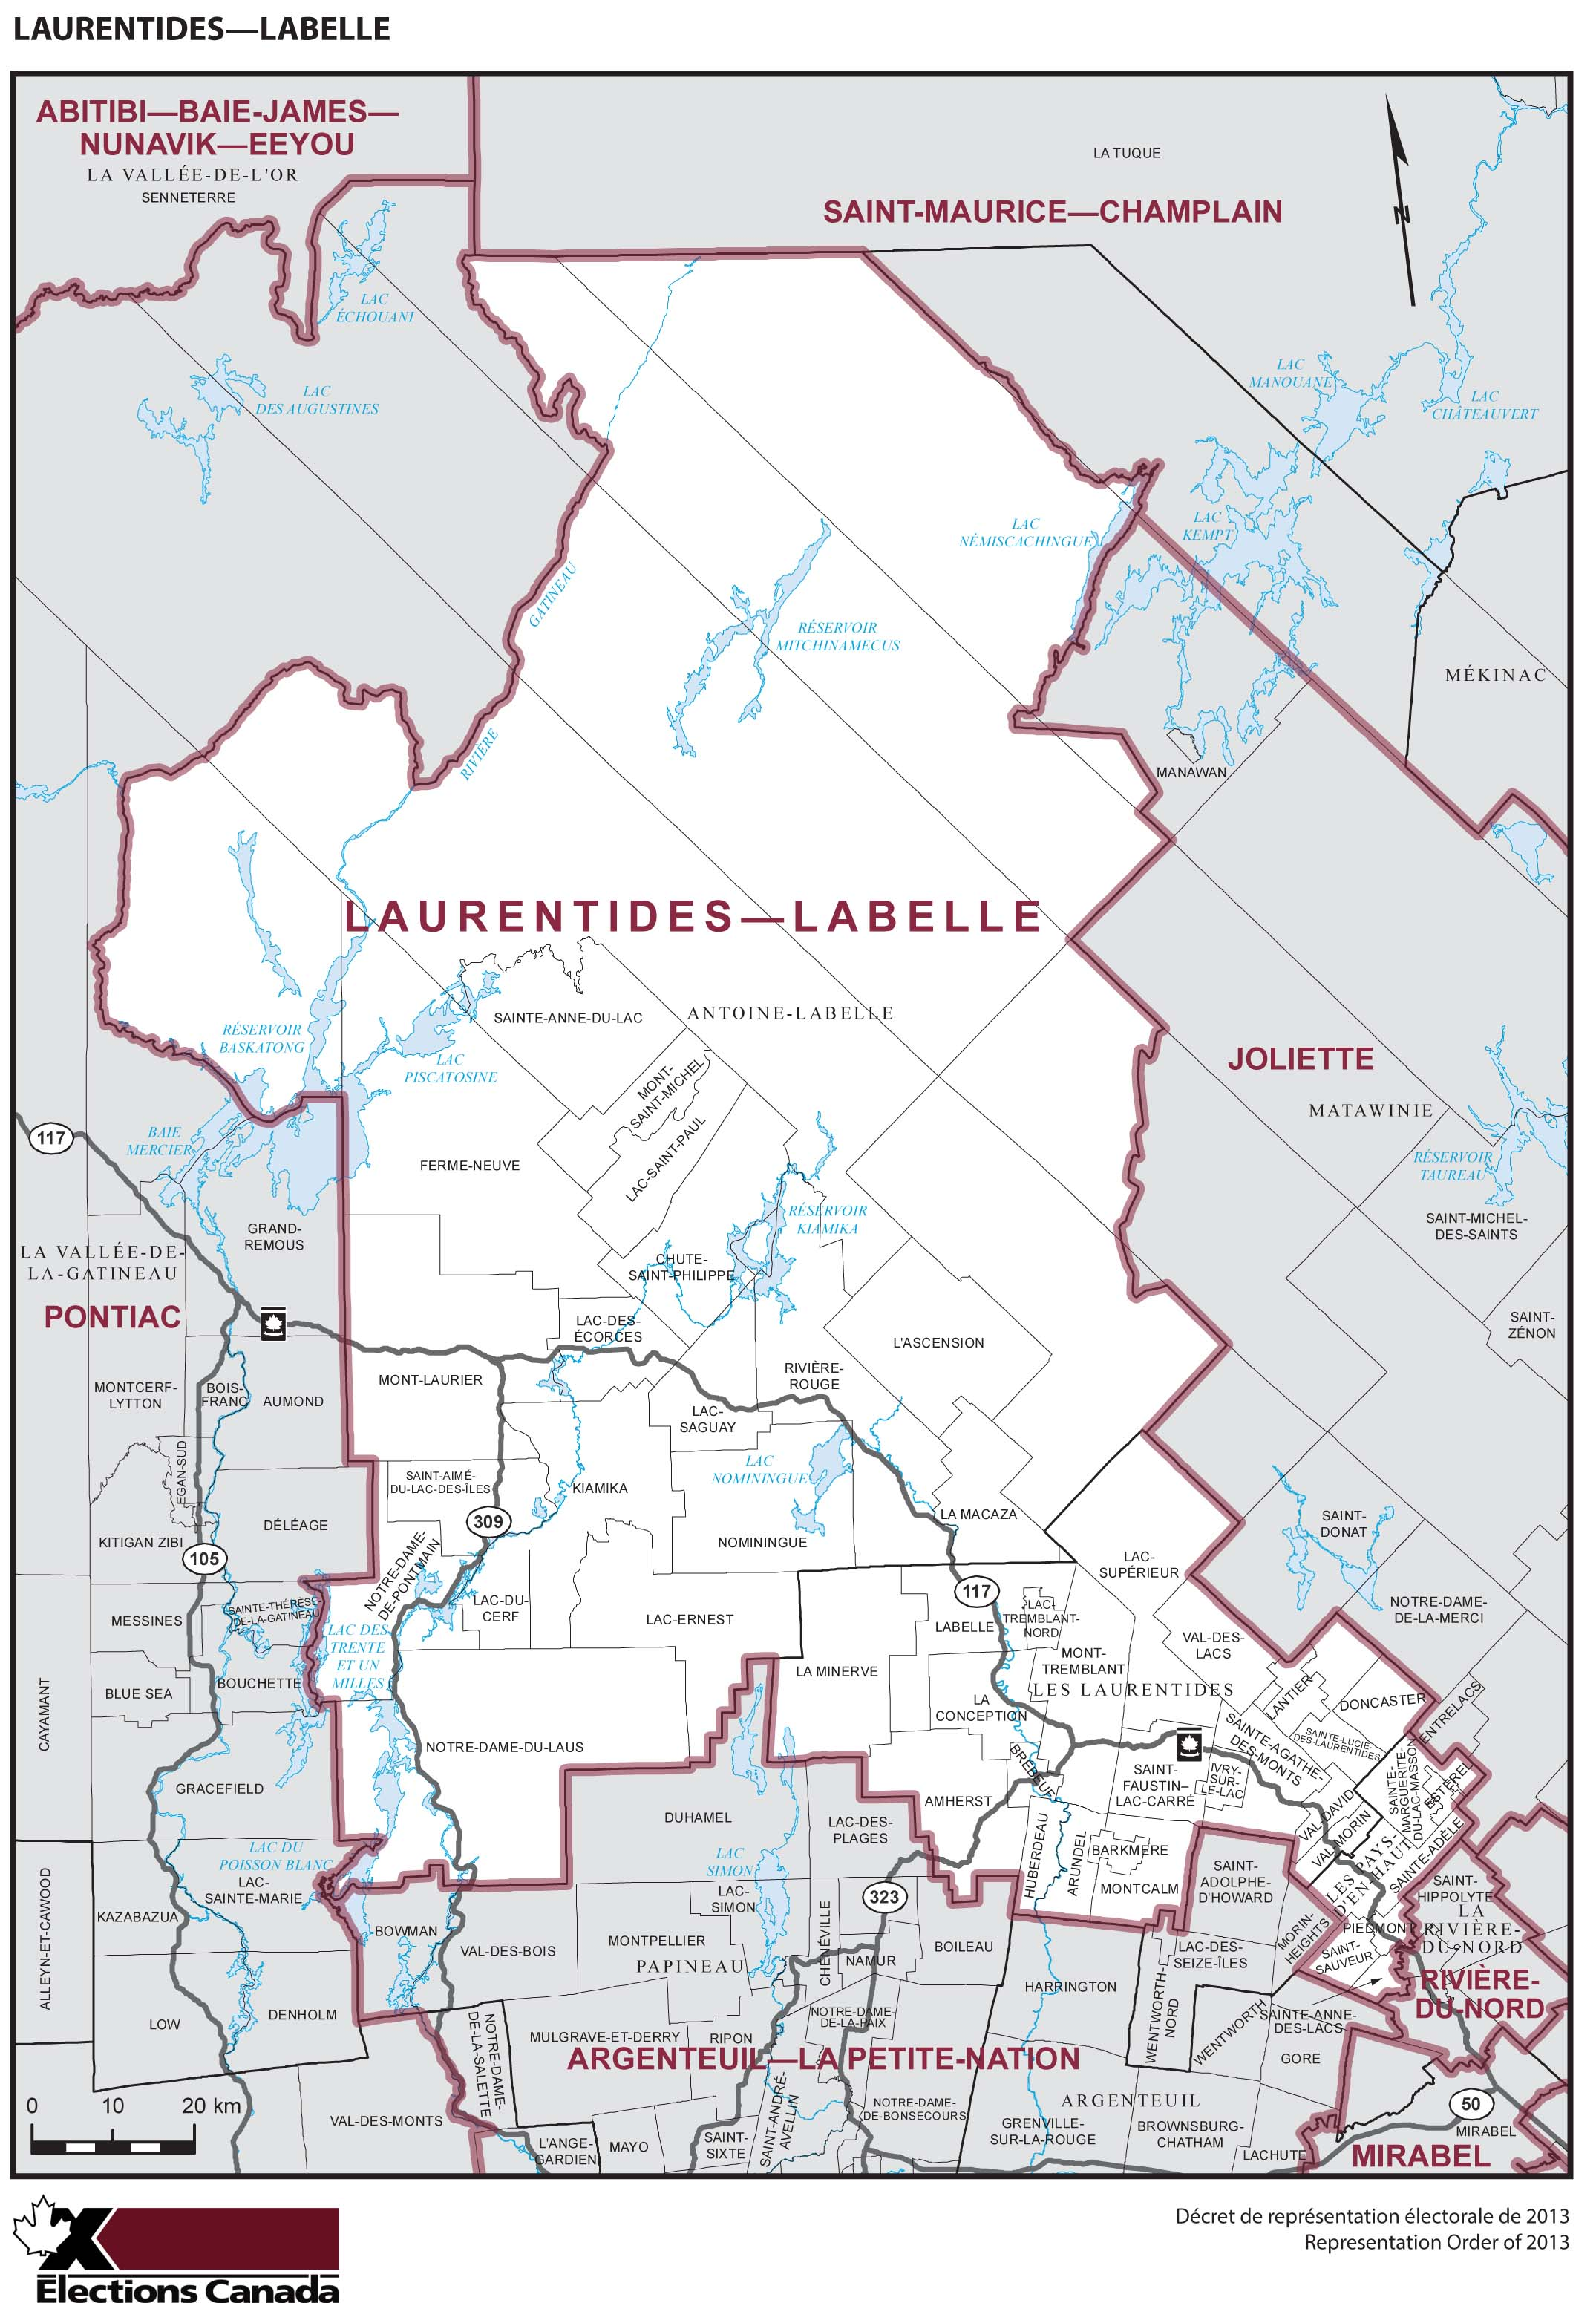 Map: Laurentides--Labelle, Federal electoral district, 2013 Representation Order (in white), Quebec